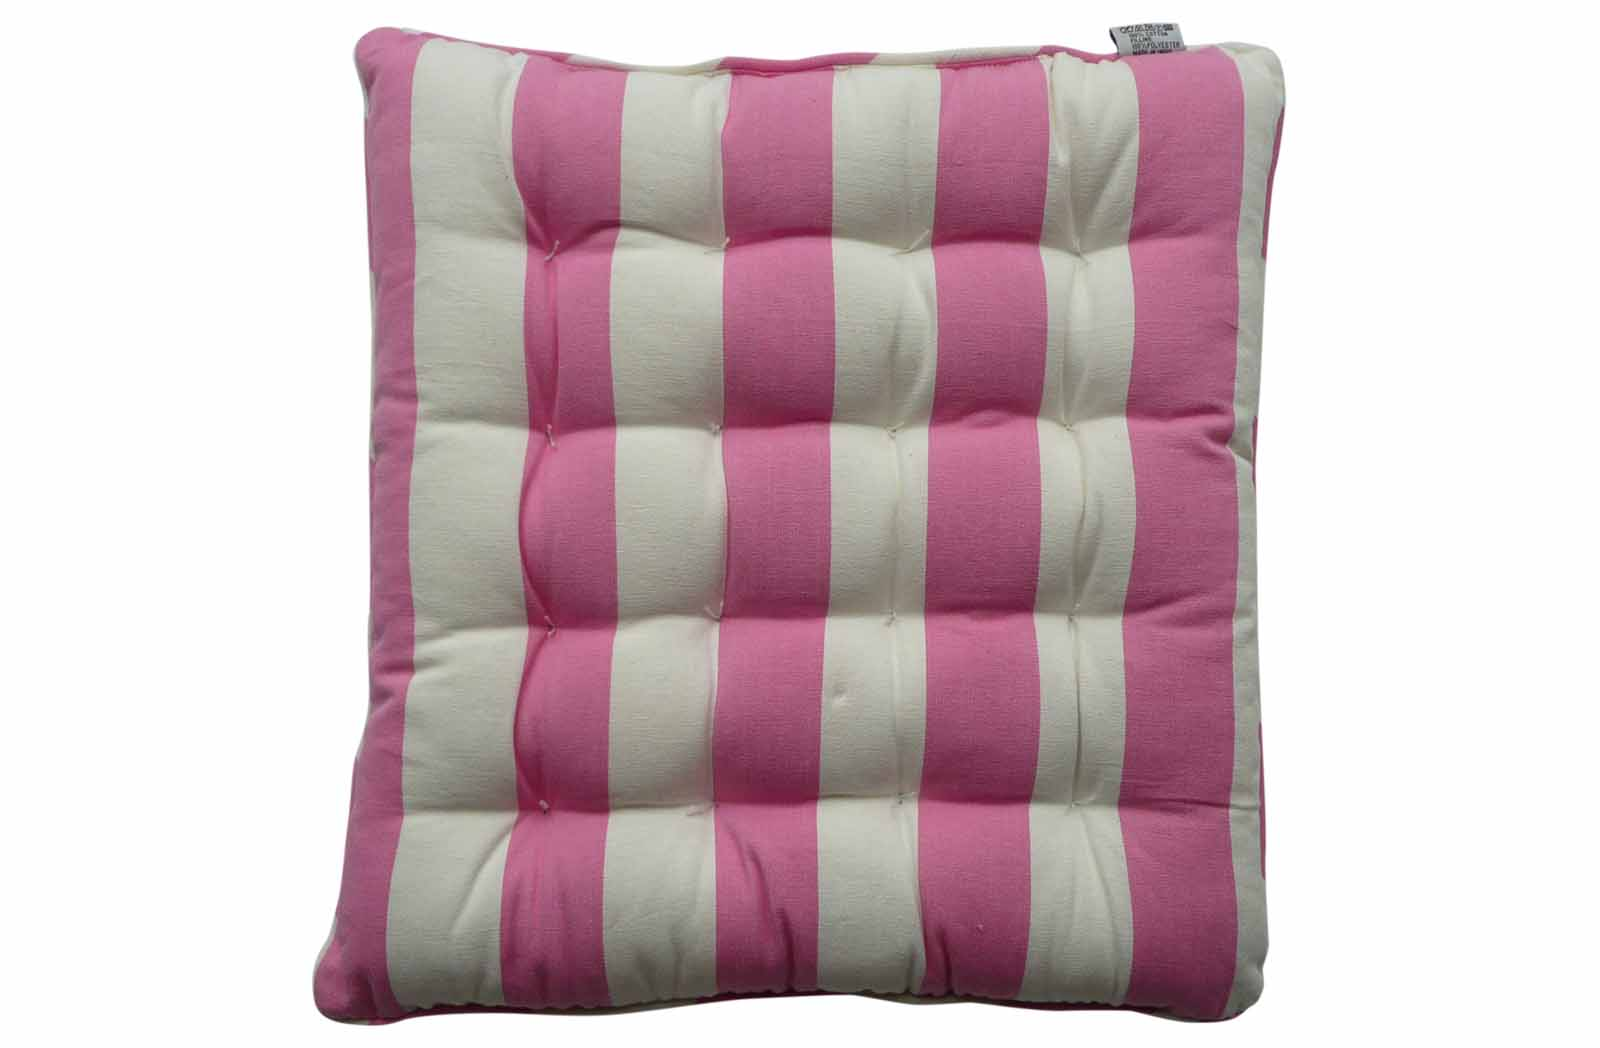 Pink and White Striped Seat Pads with Piping